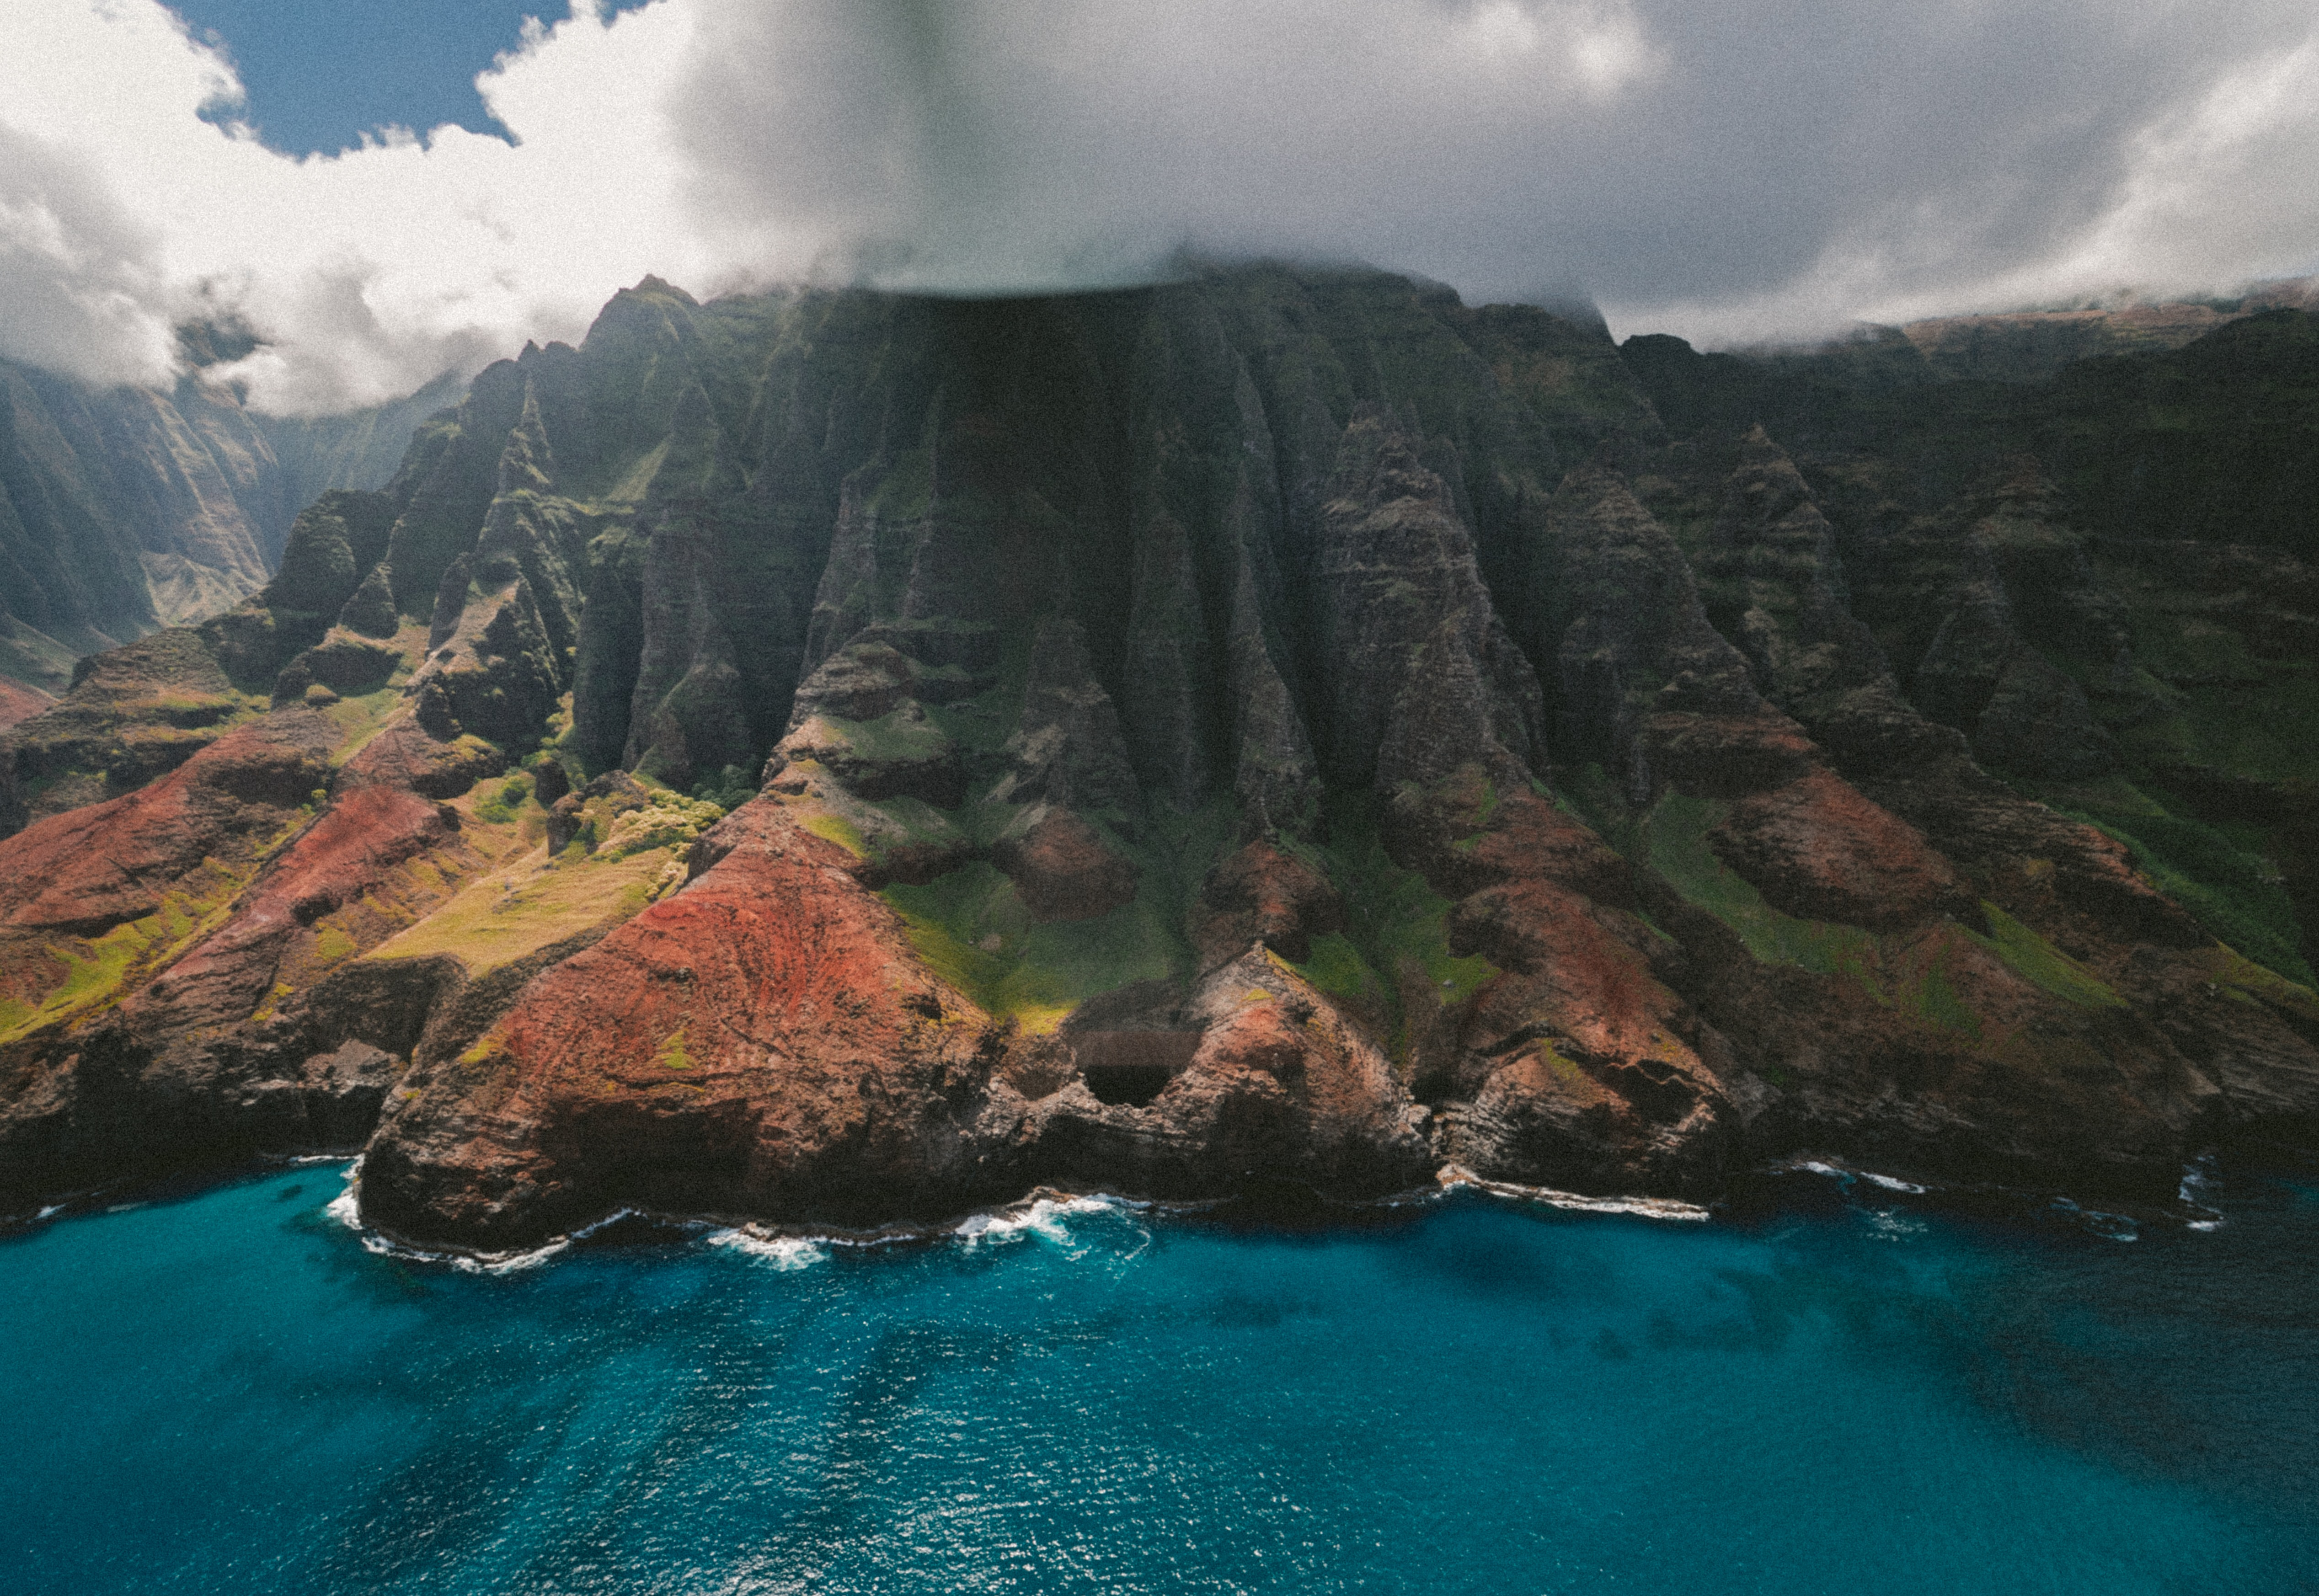 A drone shot of a colorful cliff with green moss and red rocks over azure water